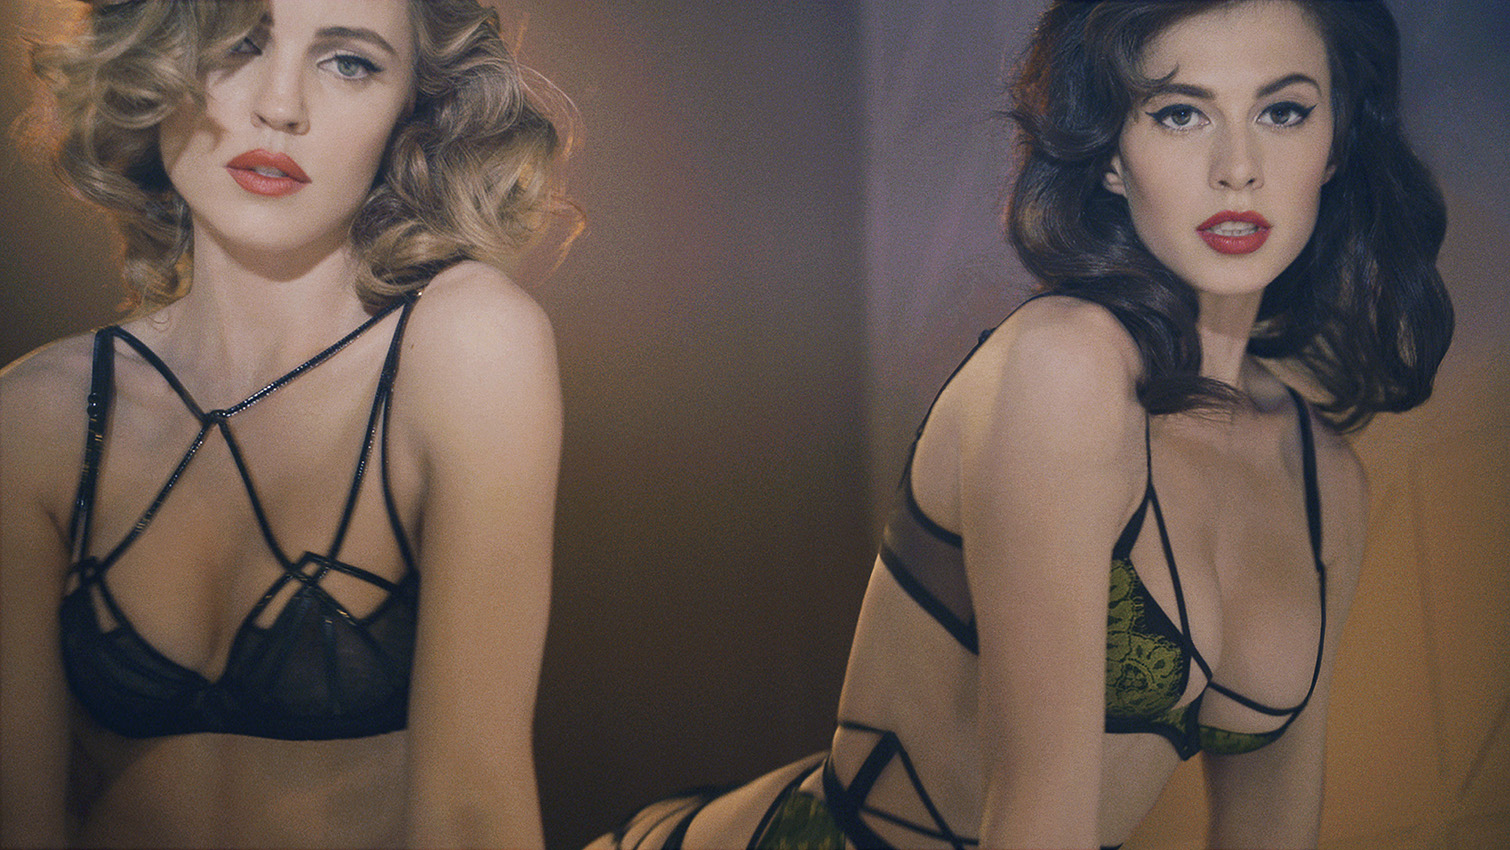 Love Retouch - NA - Agent Provocateur : John Cameron Mitchell